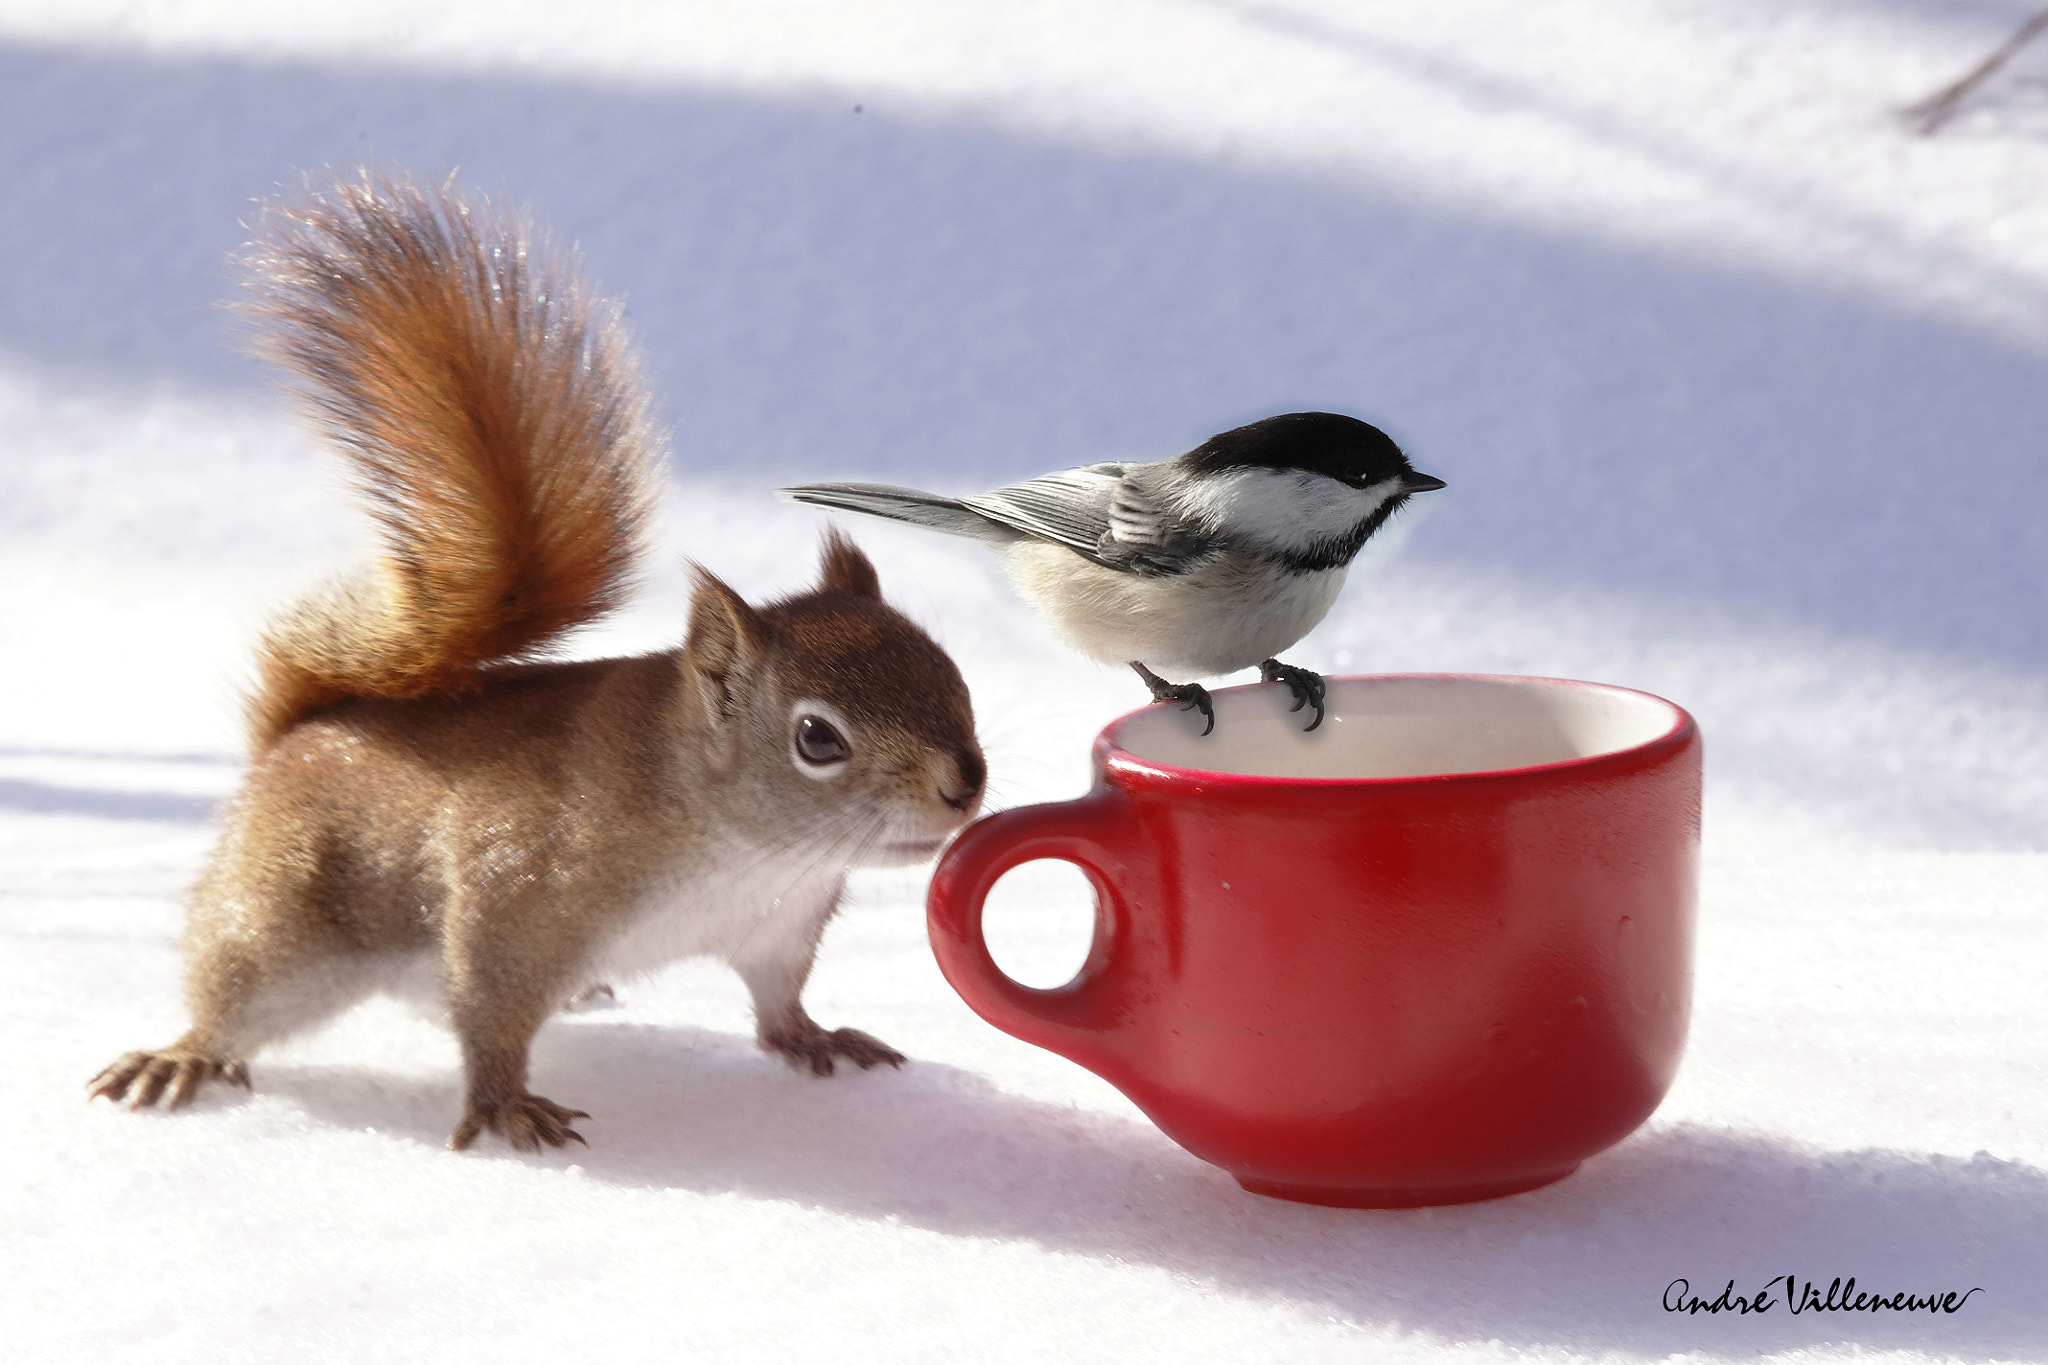 Photograph The bird and the squirrel by Andre Villeneuve on 500px